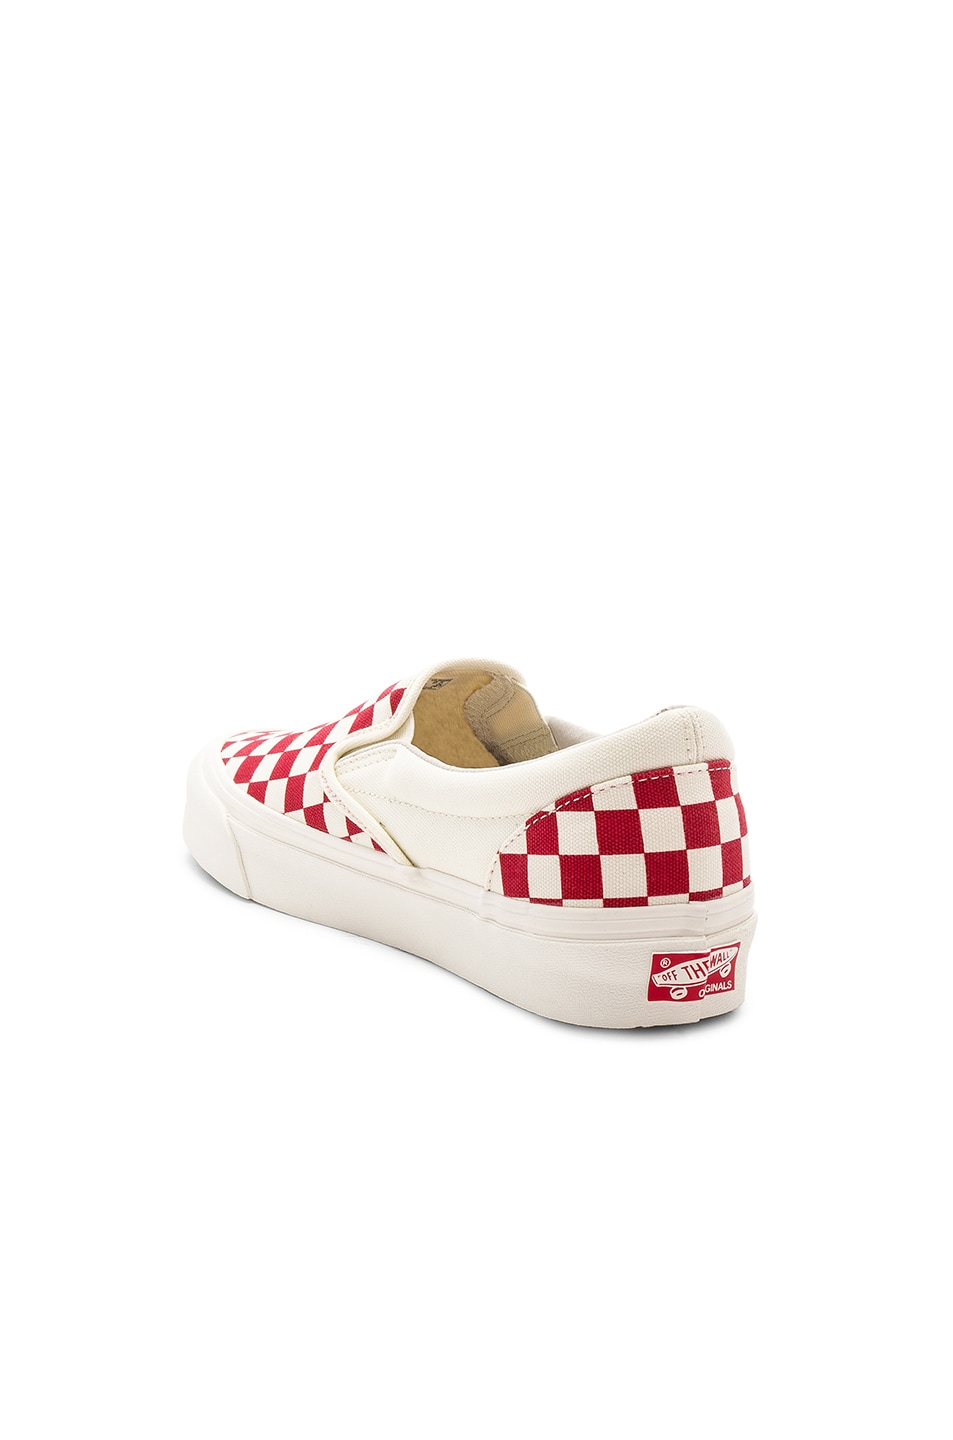 Image 3 of Vans Vault OG Classic Canvas Slip-Ons LX in White & Red